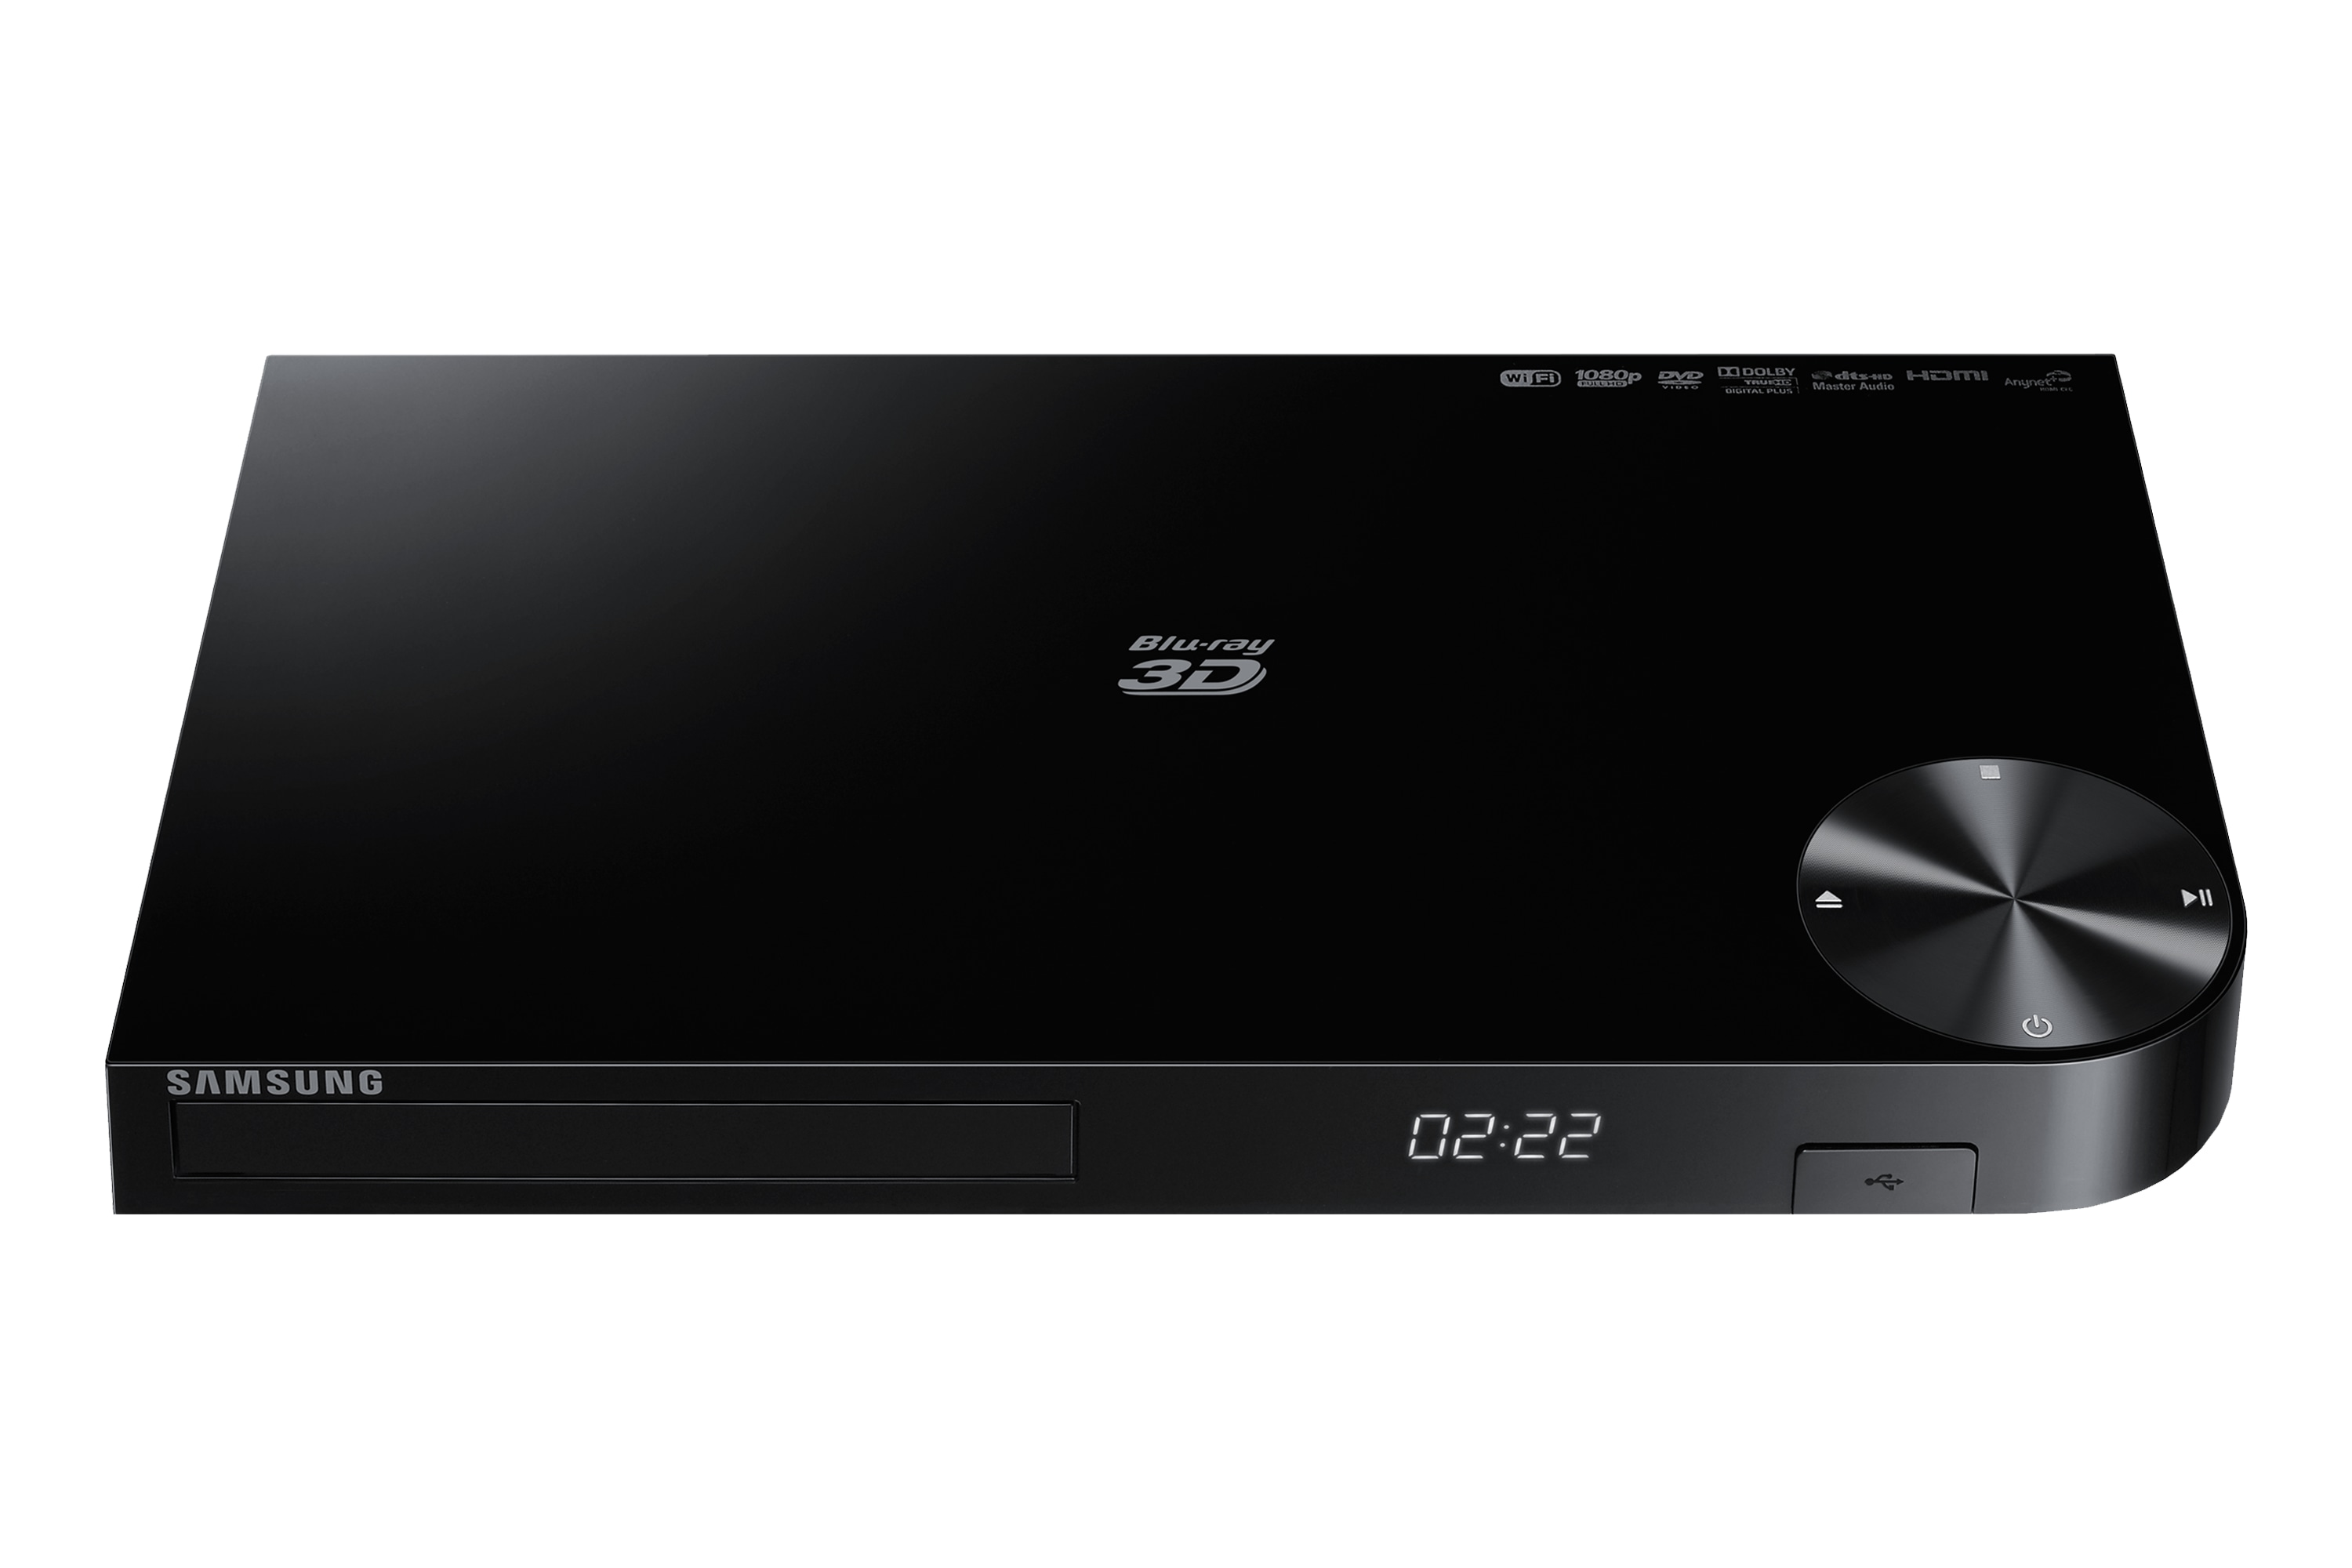 BD-F5900 Smart 3D Wi-Fi Blu-ray Disc Player